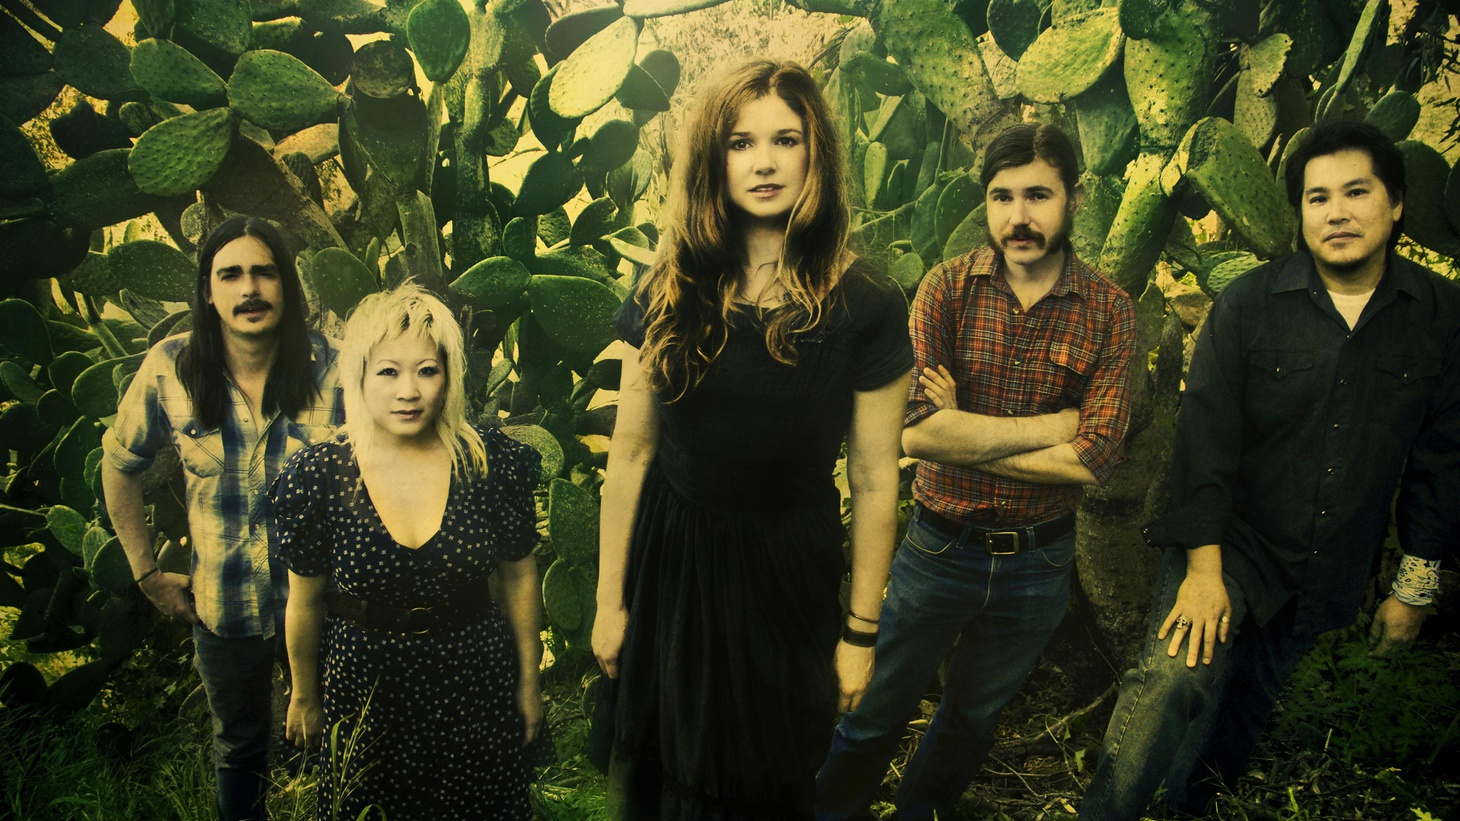 """Leslie Stevens leads a fine bunch of musicians as the band  Leslie and the Badgers .  Based in L.A. and inspired by classic country, this one time punk musician and music supervisor has traded it all to create her own sound with album Roomful of Smoke. Today's Top Tune is """" Old Timers """"."""